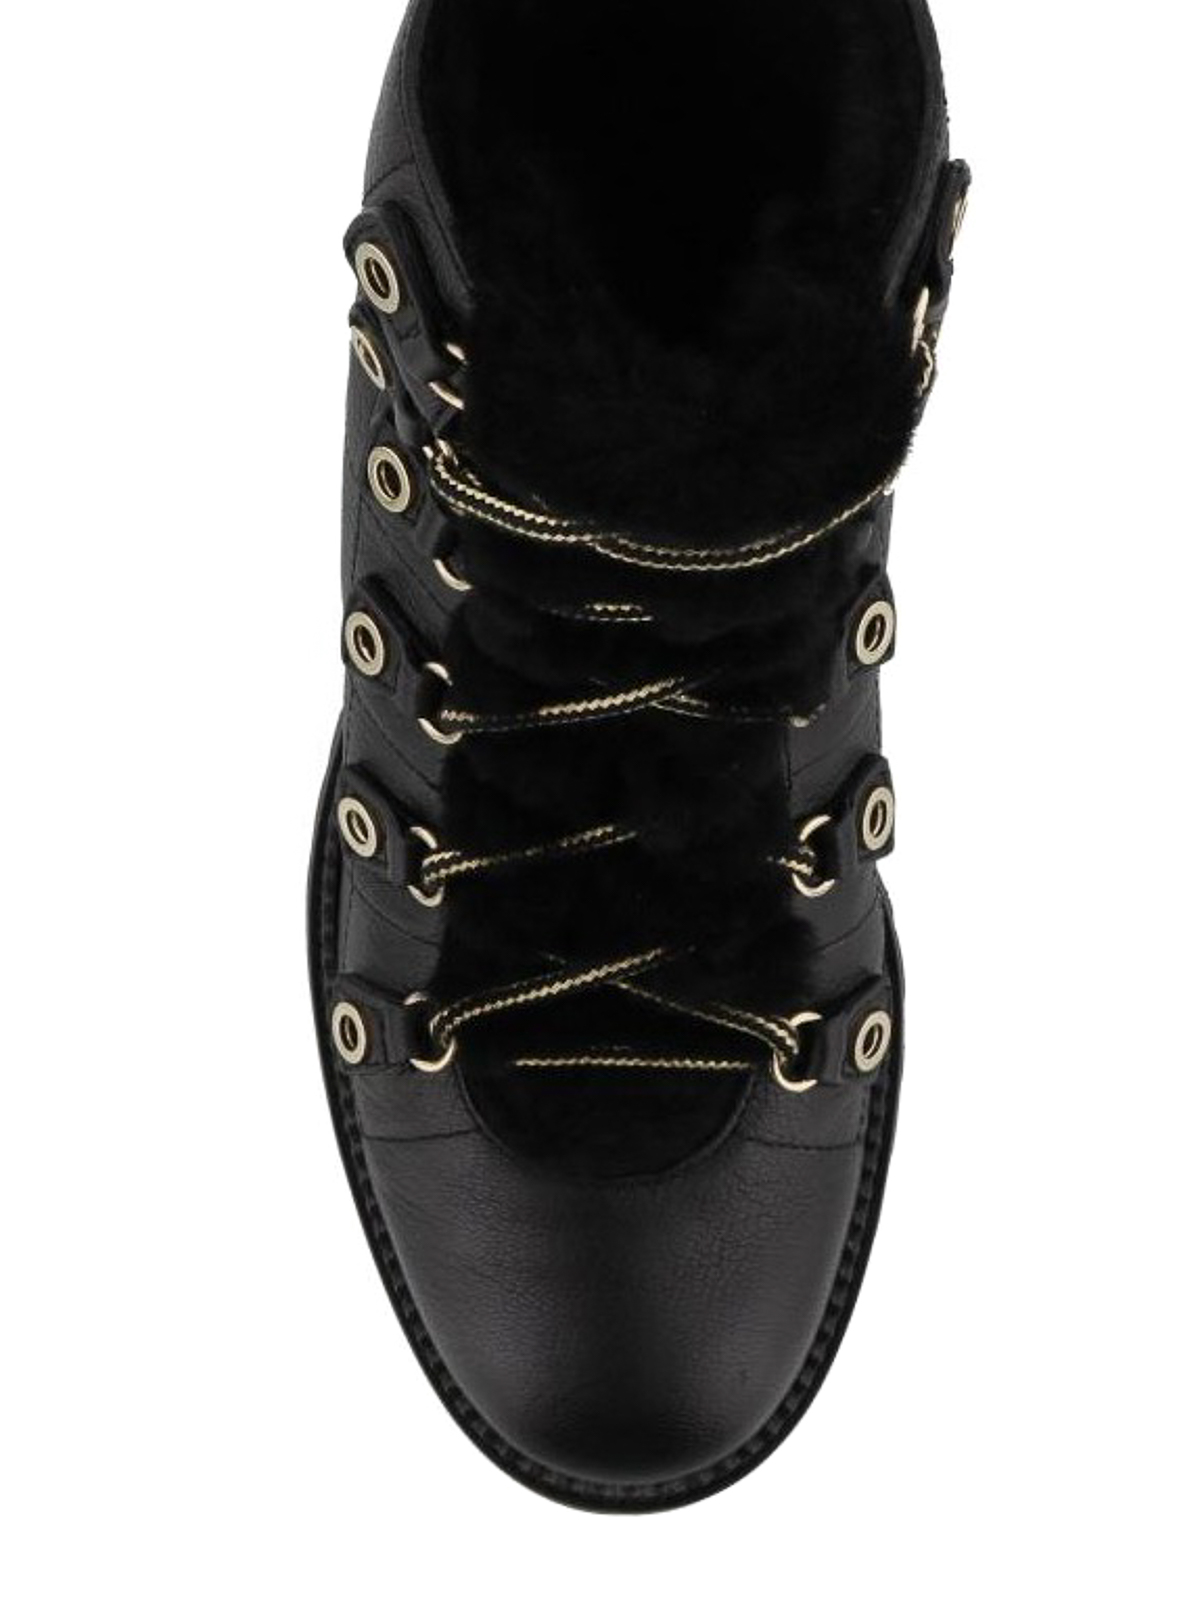 d4e97091a94c iKRIX JIMMY CHOO  ankle boots - Black leather and shearling flat ankle boots